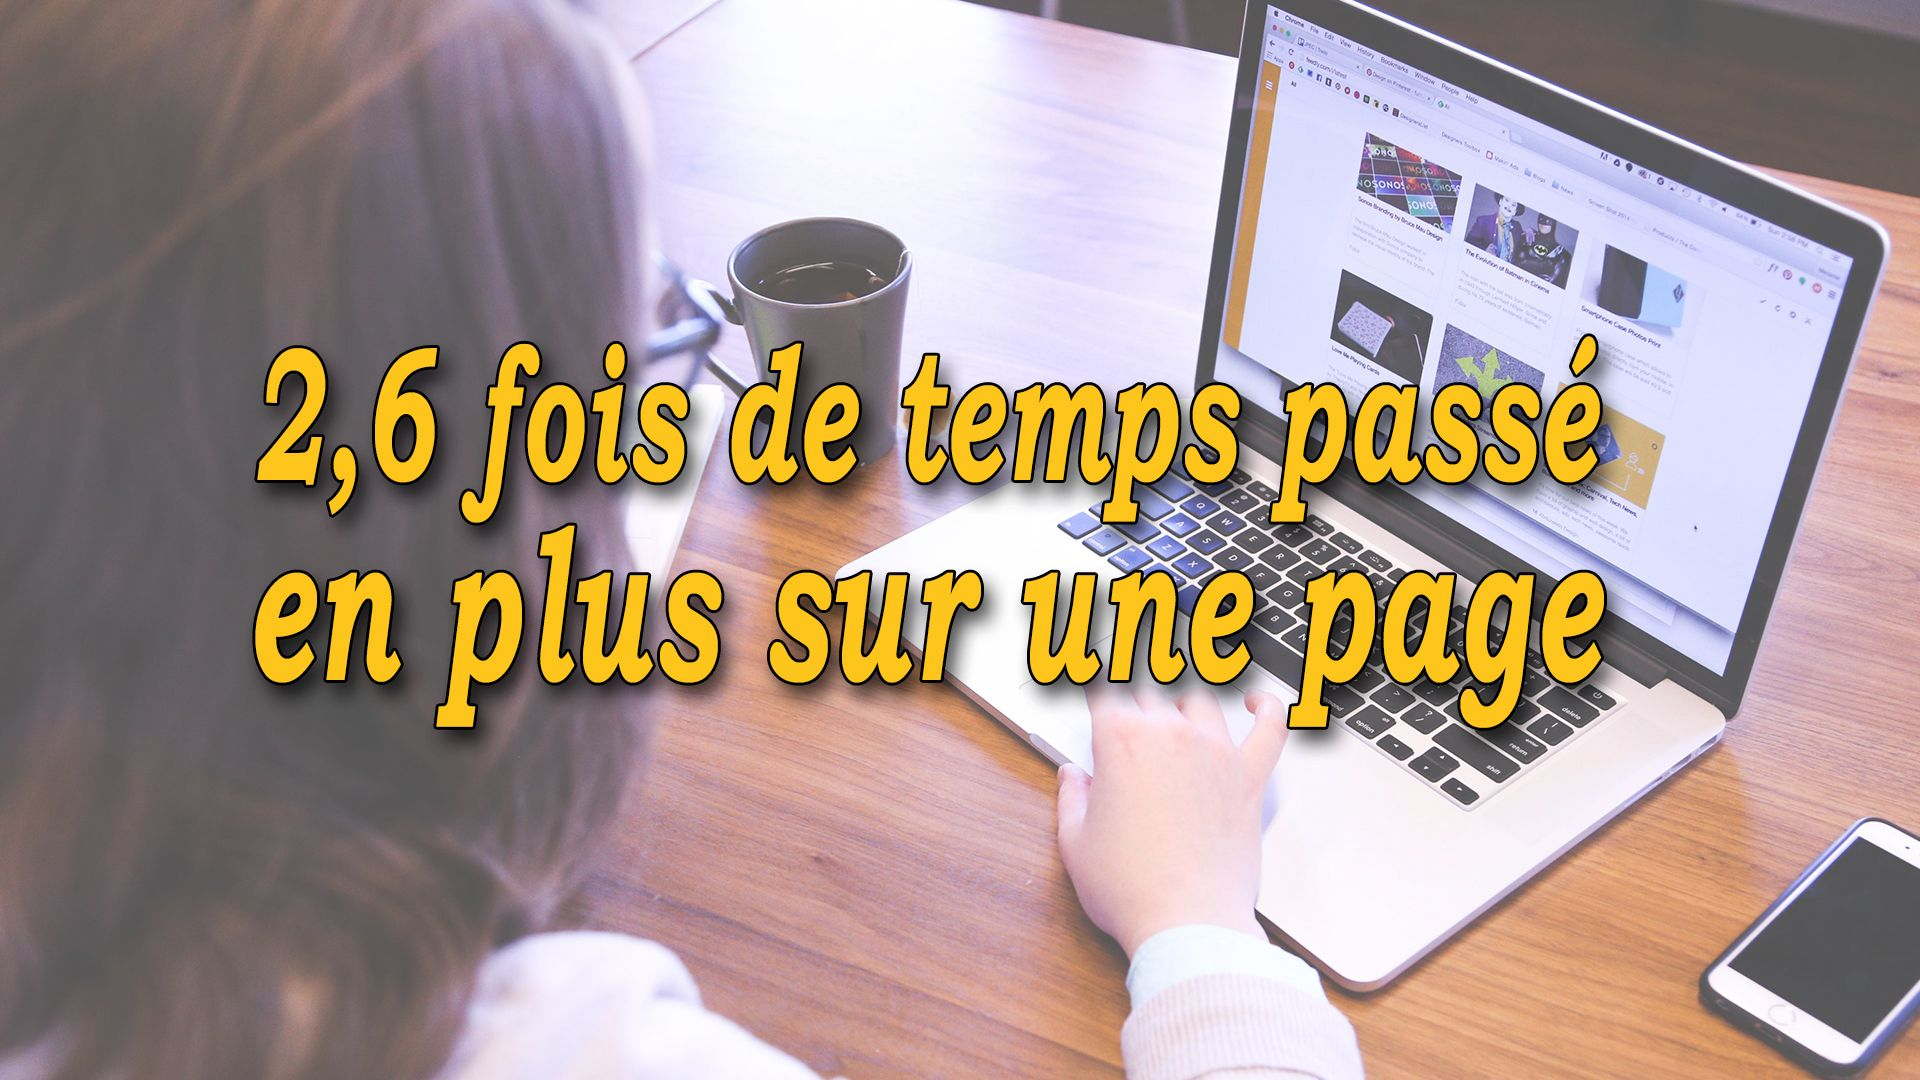 2,6 fois de temps passé en plus sur une page #GrowthHacking #WebMarketing #FormationGrowthHacking #CentreDeFormationFrance #TunnelAARRR #AARRR #SocialMedia #CommunityManagement #SEO